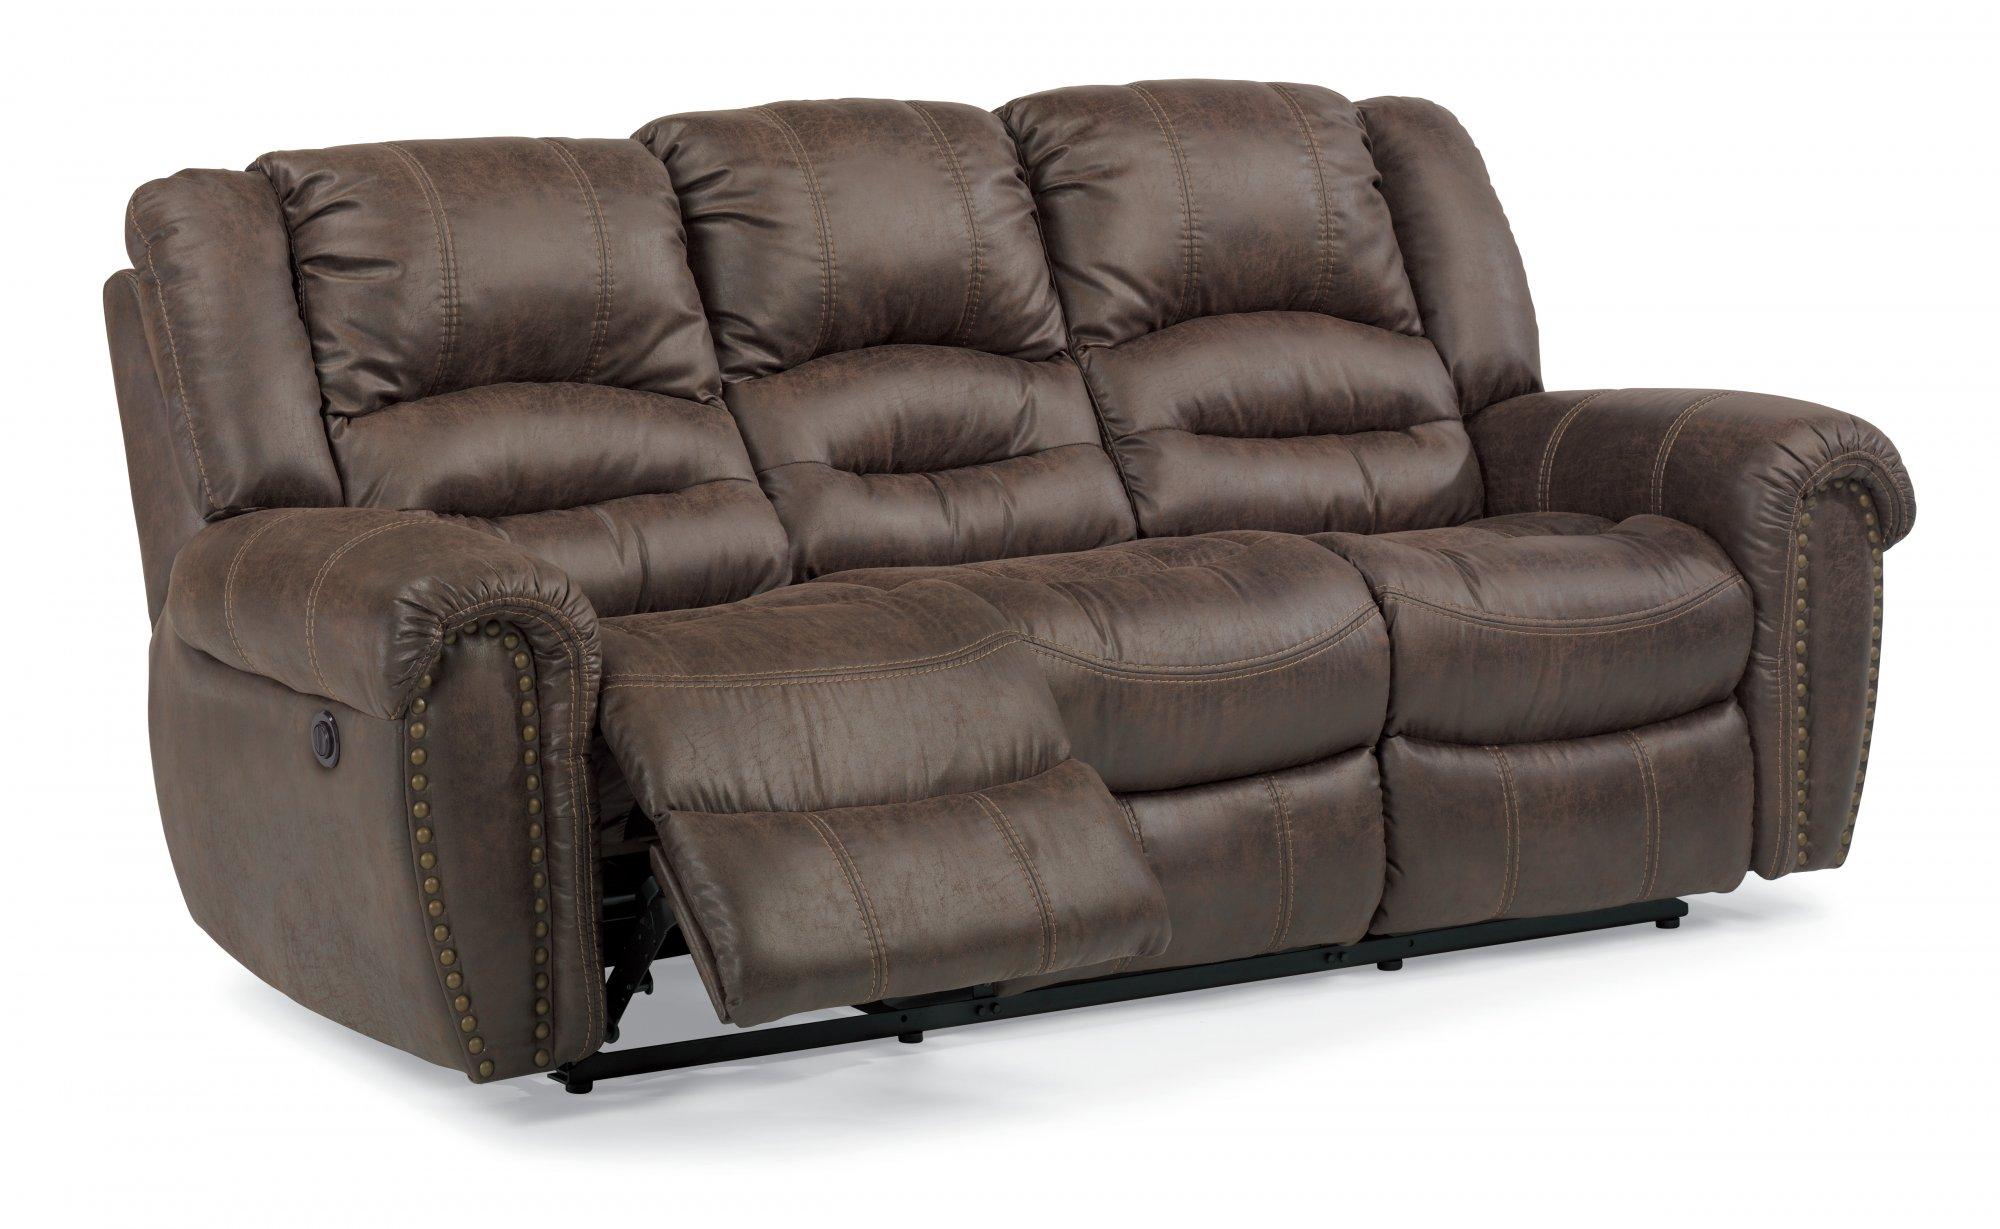 Phenomenal Downtown Fabric Power Reclining Sofa W Padded Arms Flexsteel Pdpeps Interior Chair Design Pdpepsorg